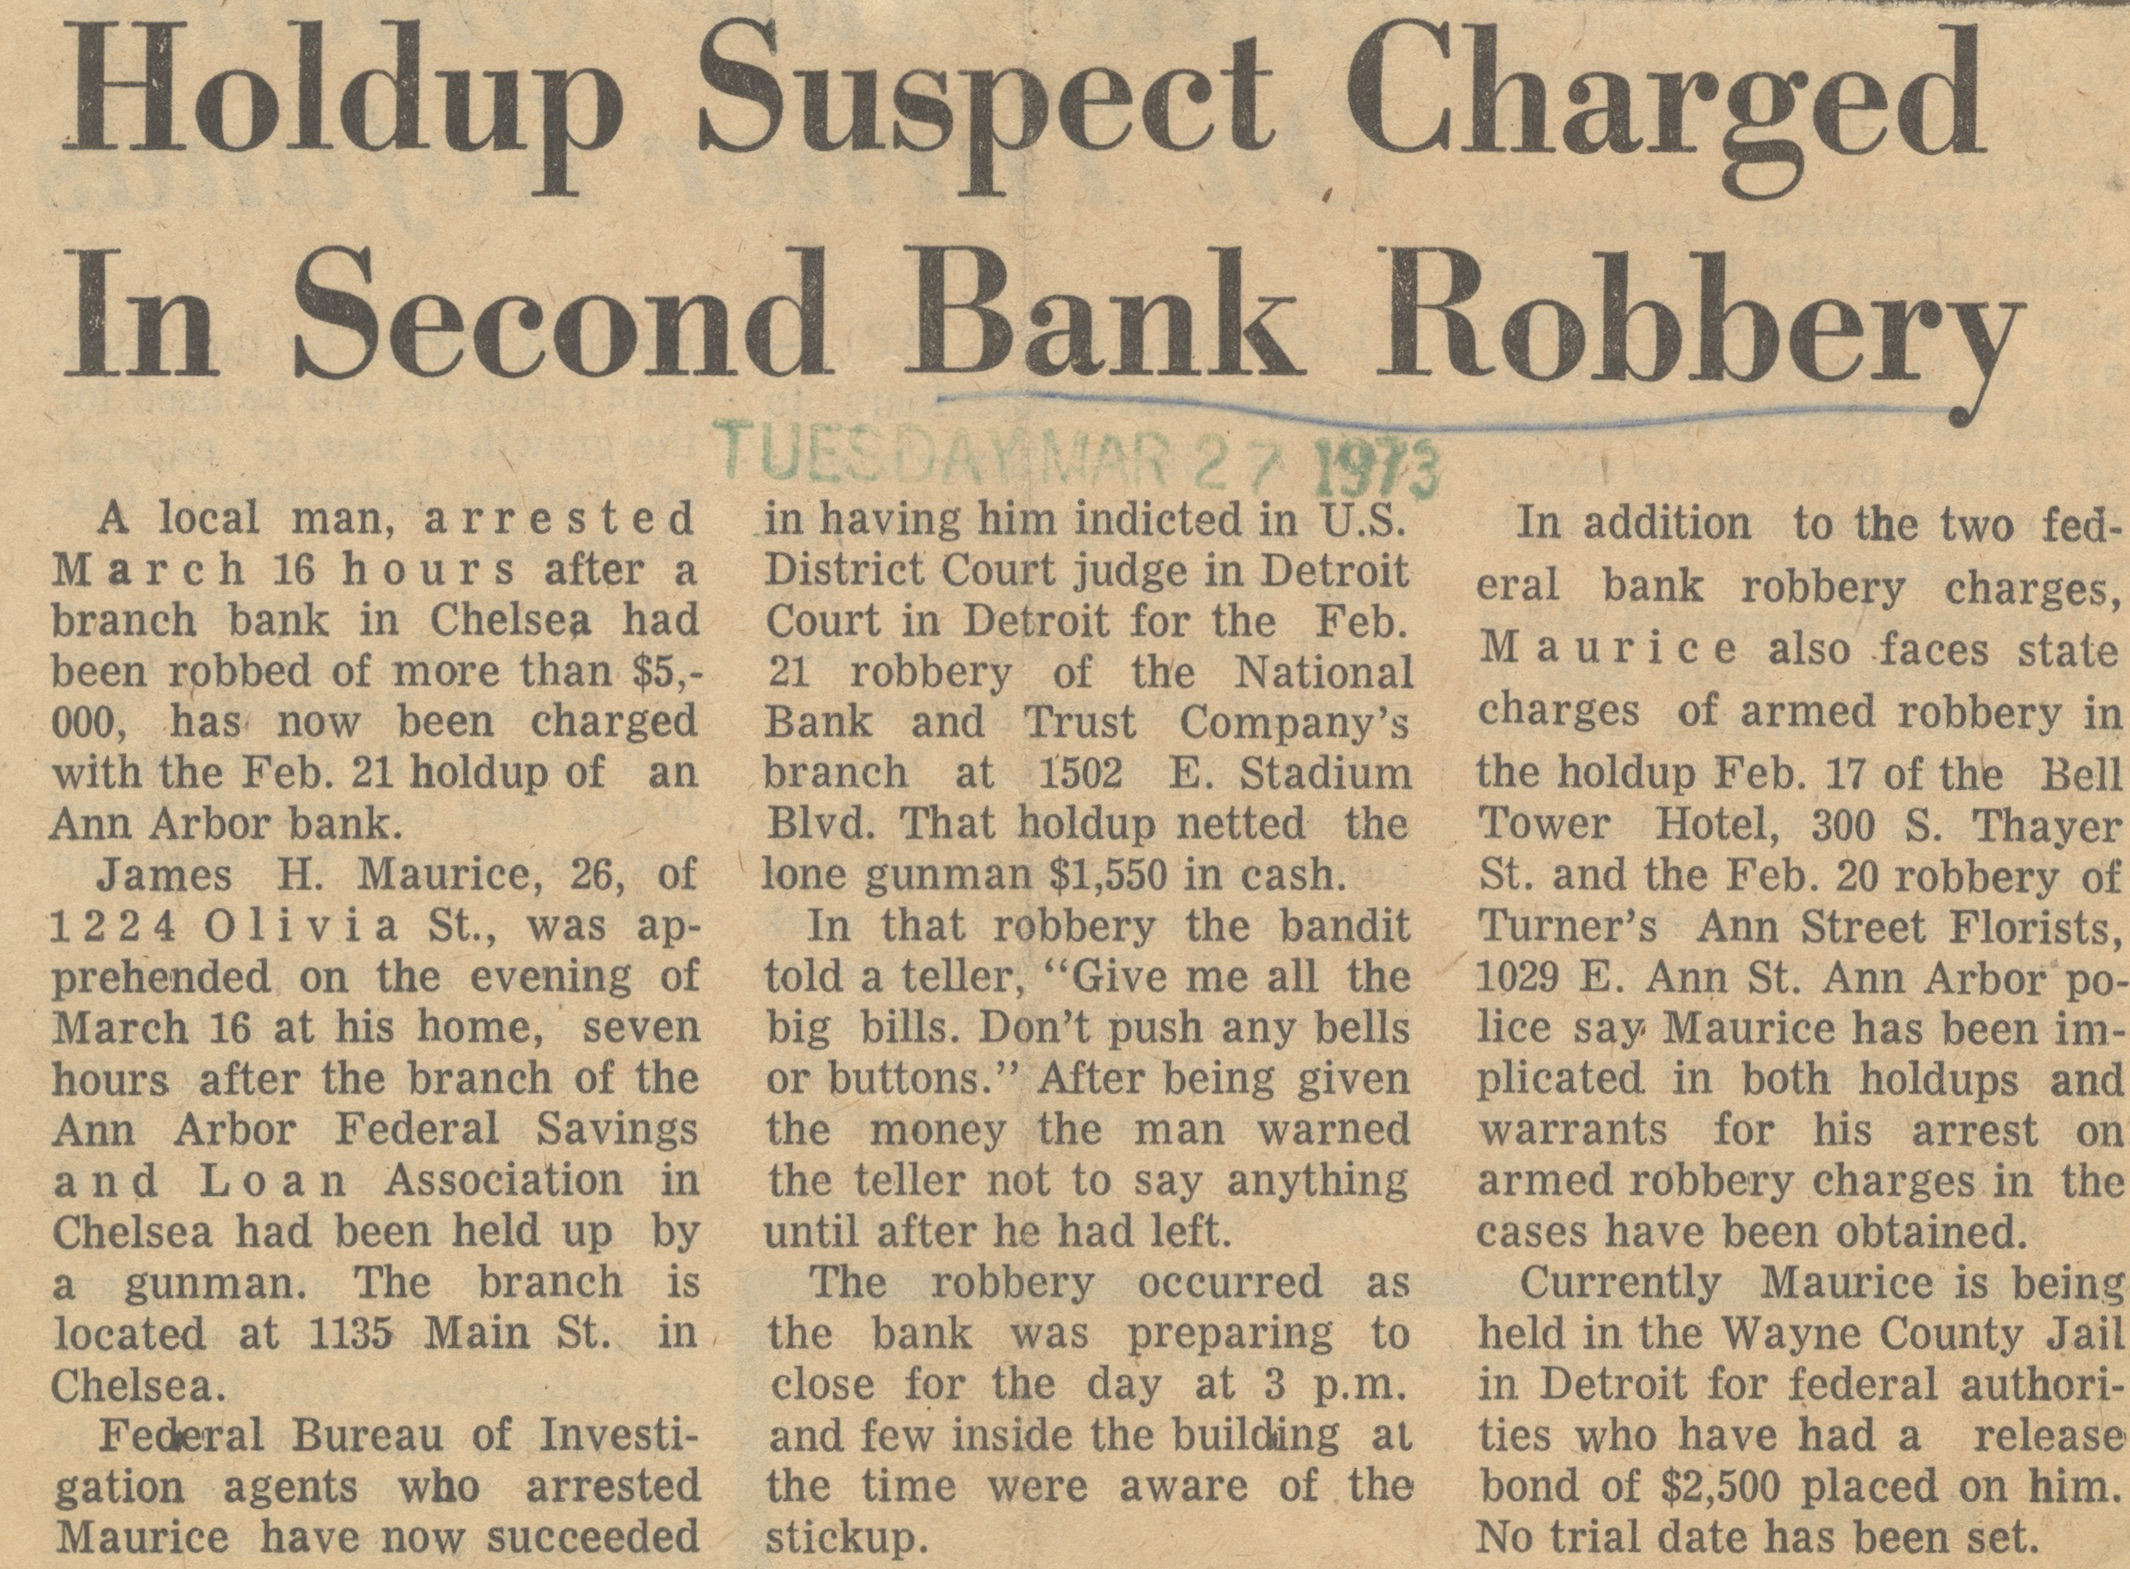 Holdup Suspect Charged In Second Bank Robbery image